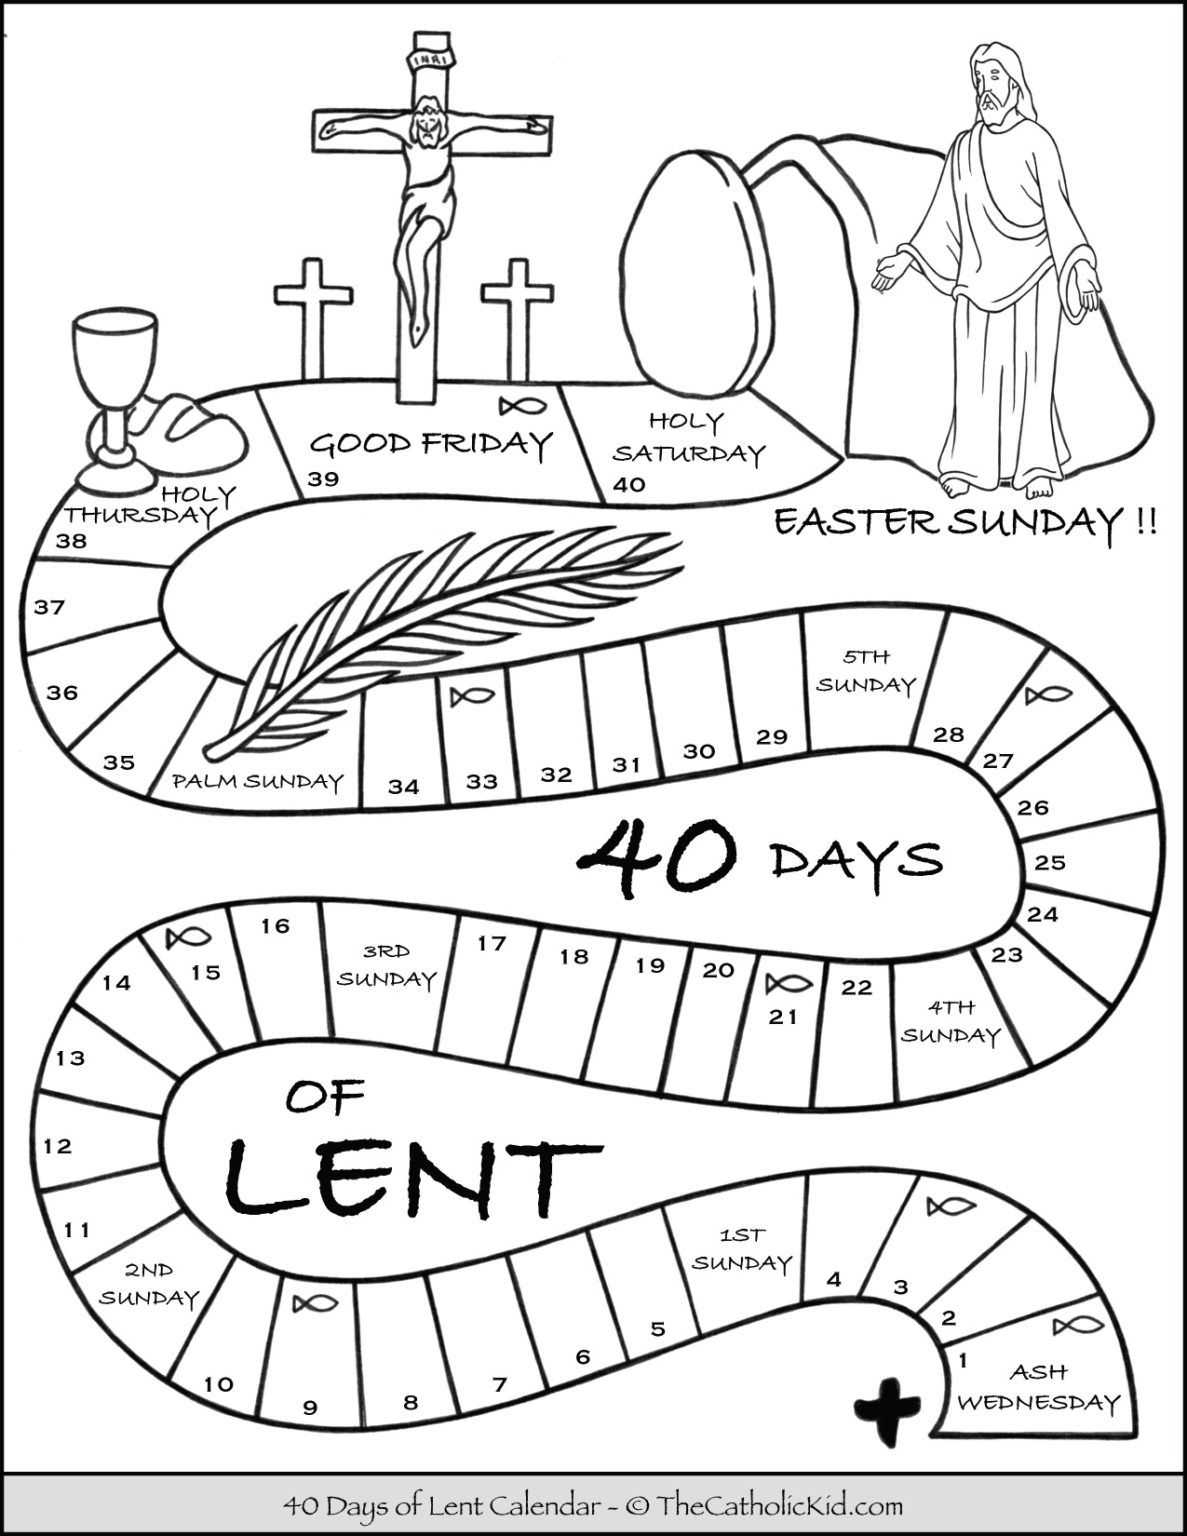 Palm Sunday Archives The Catholic Kid Catholic Coloring Pages And Games For Children Lent Catholic Coloring Worksheets For Kids